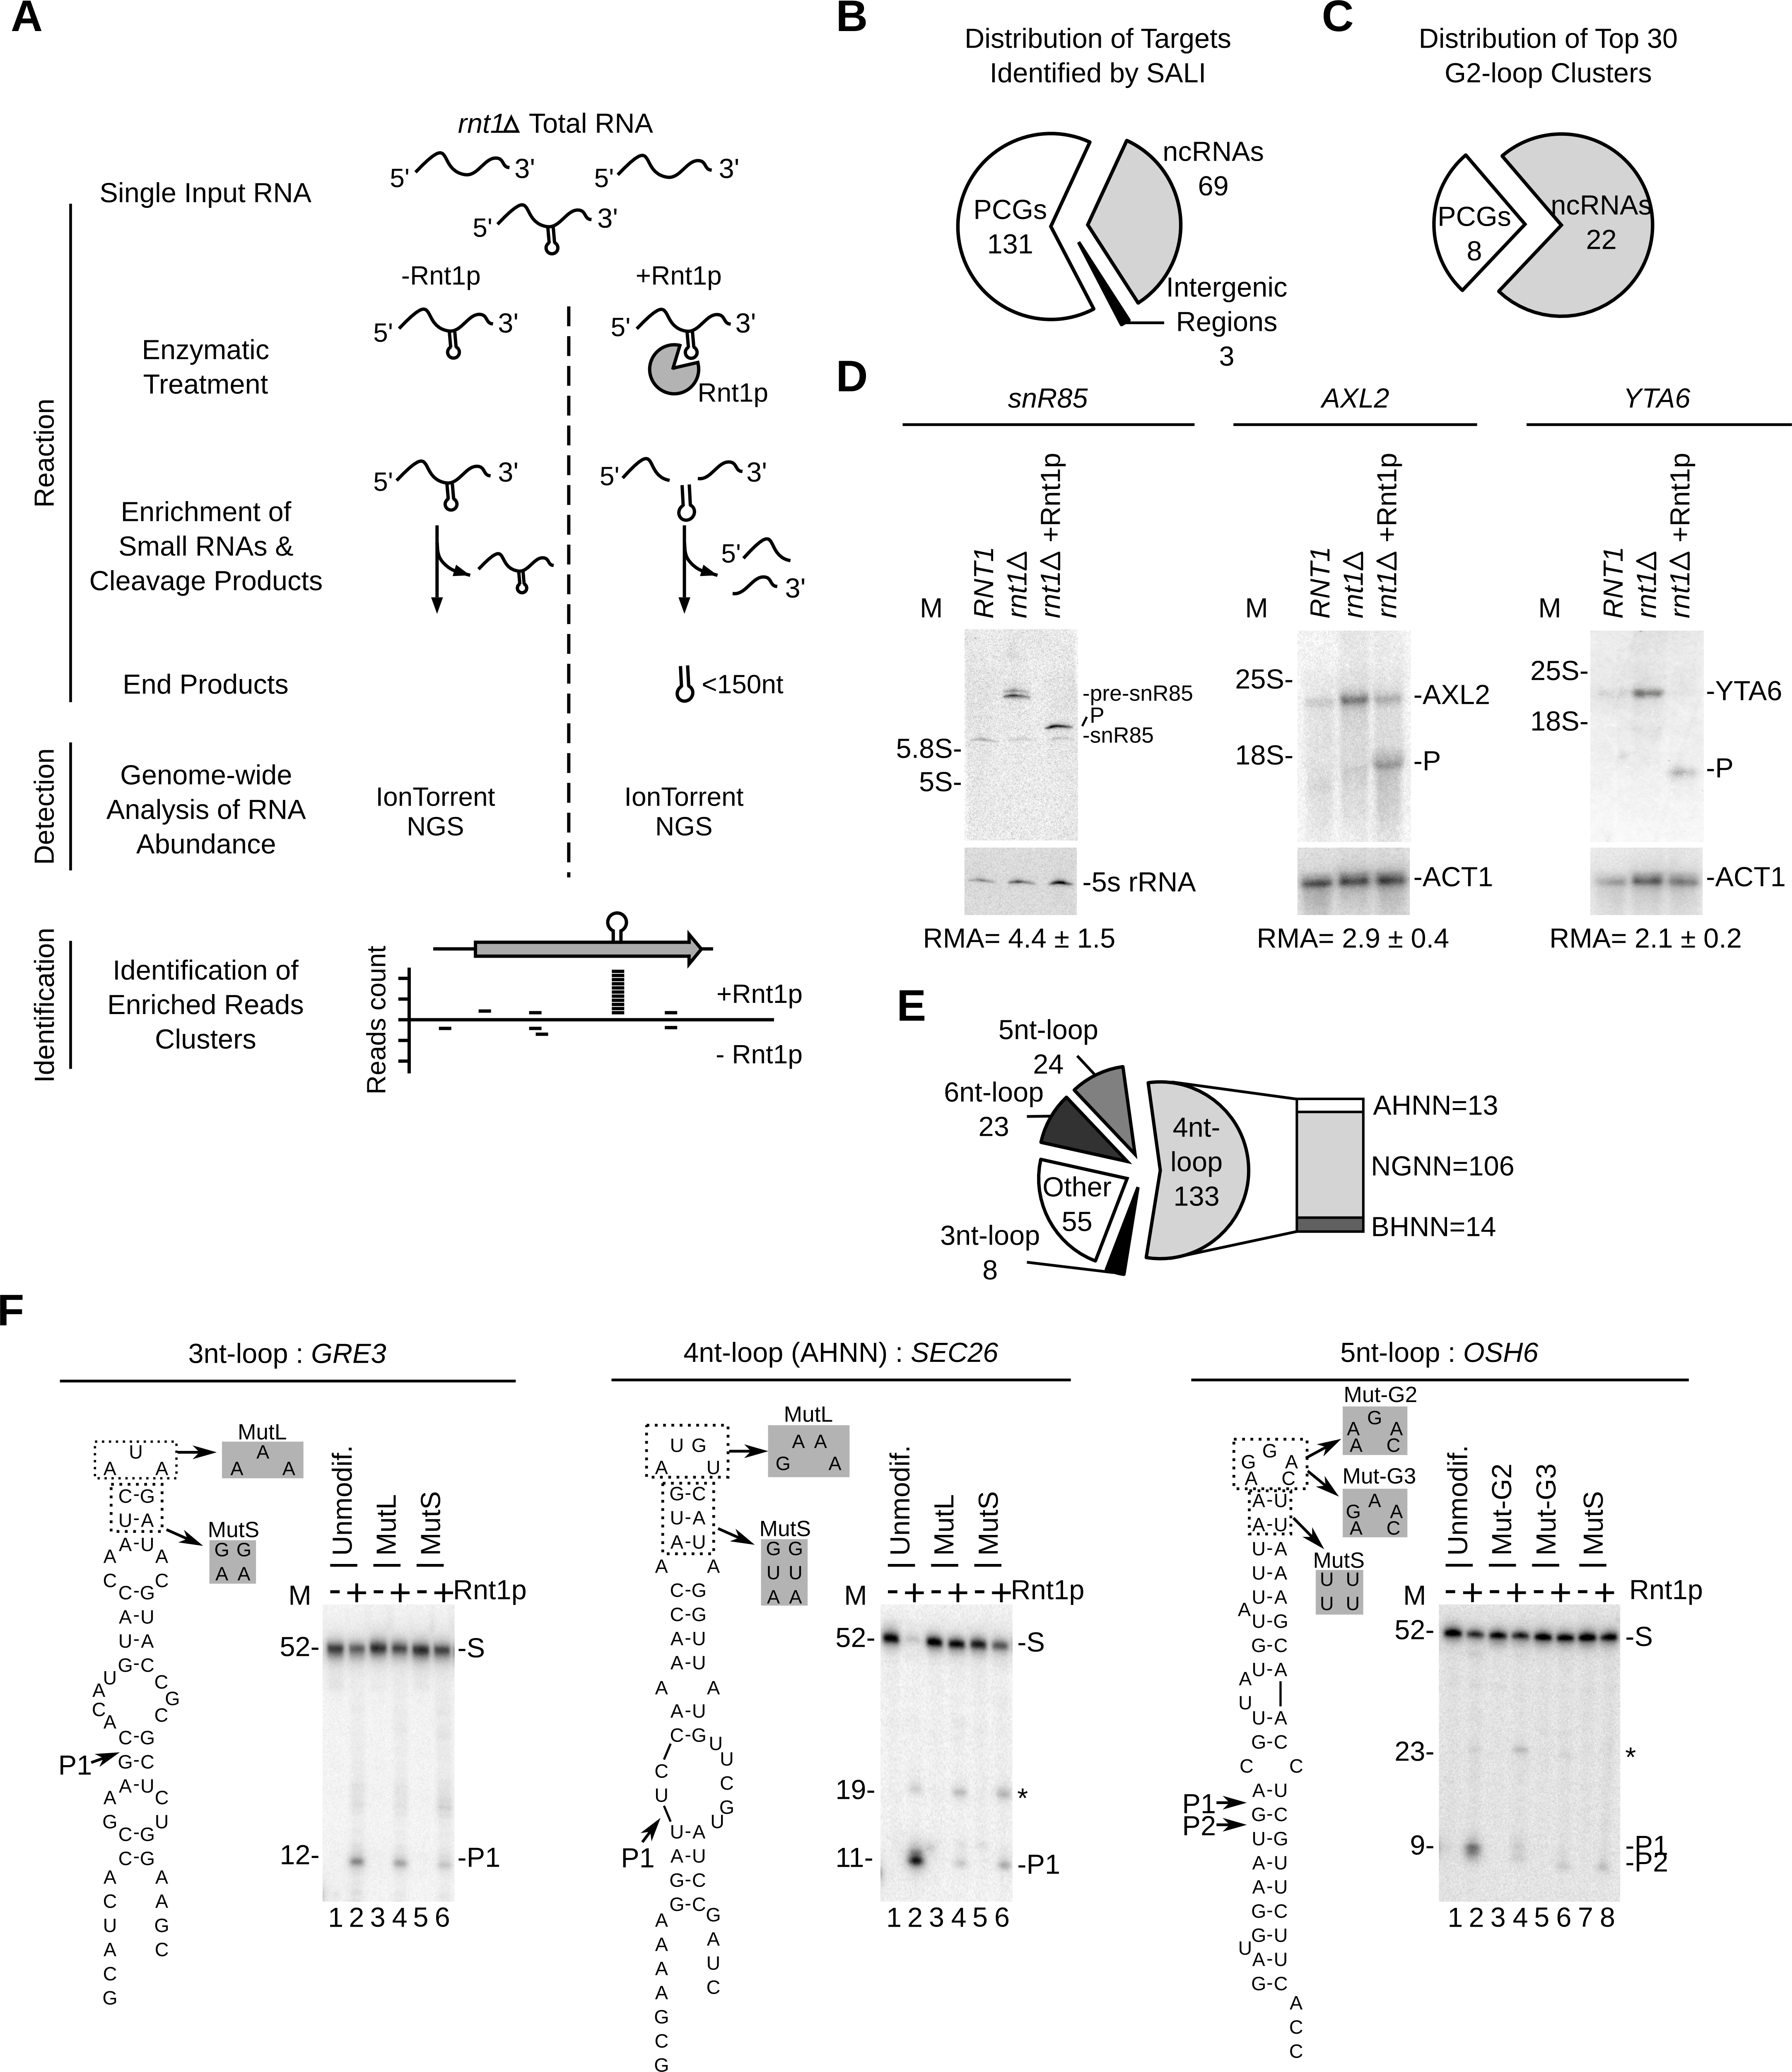 Sequence assisted identification of Rnt1p cleavage signals.